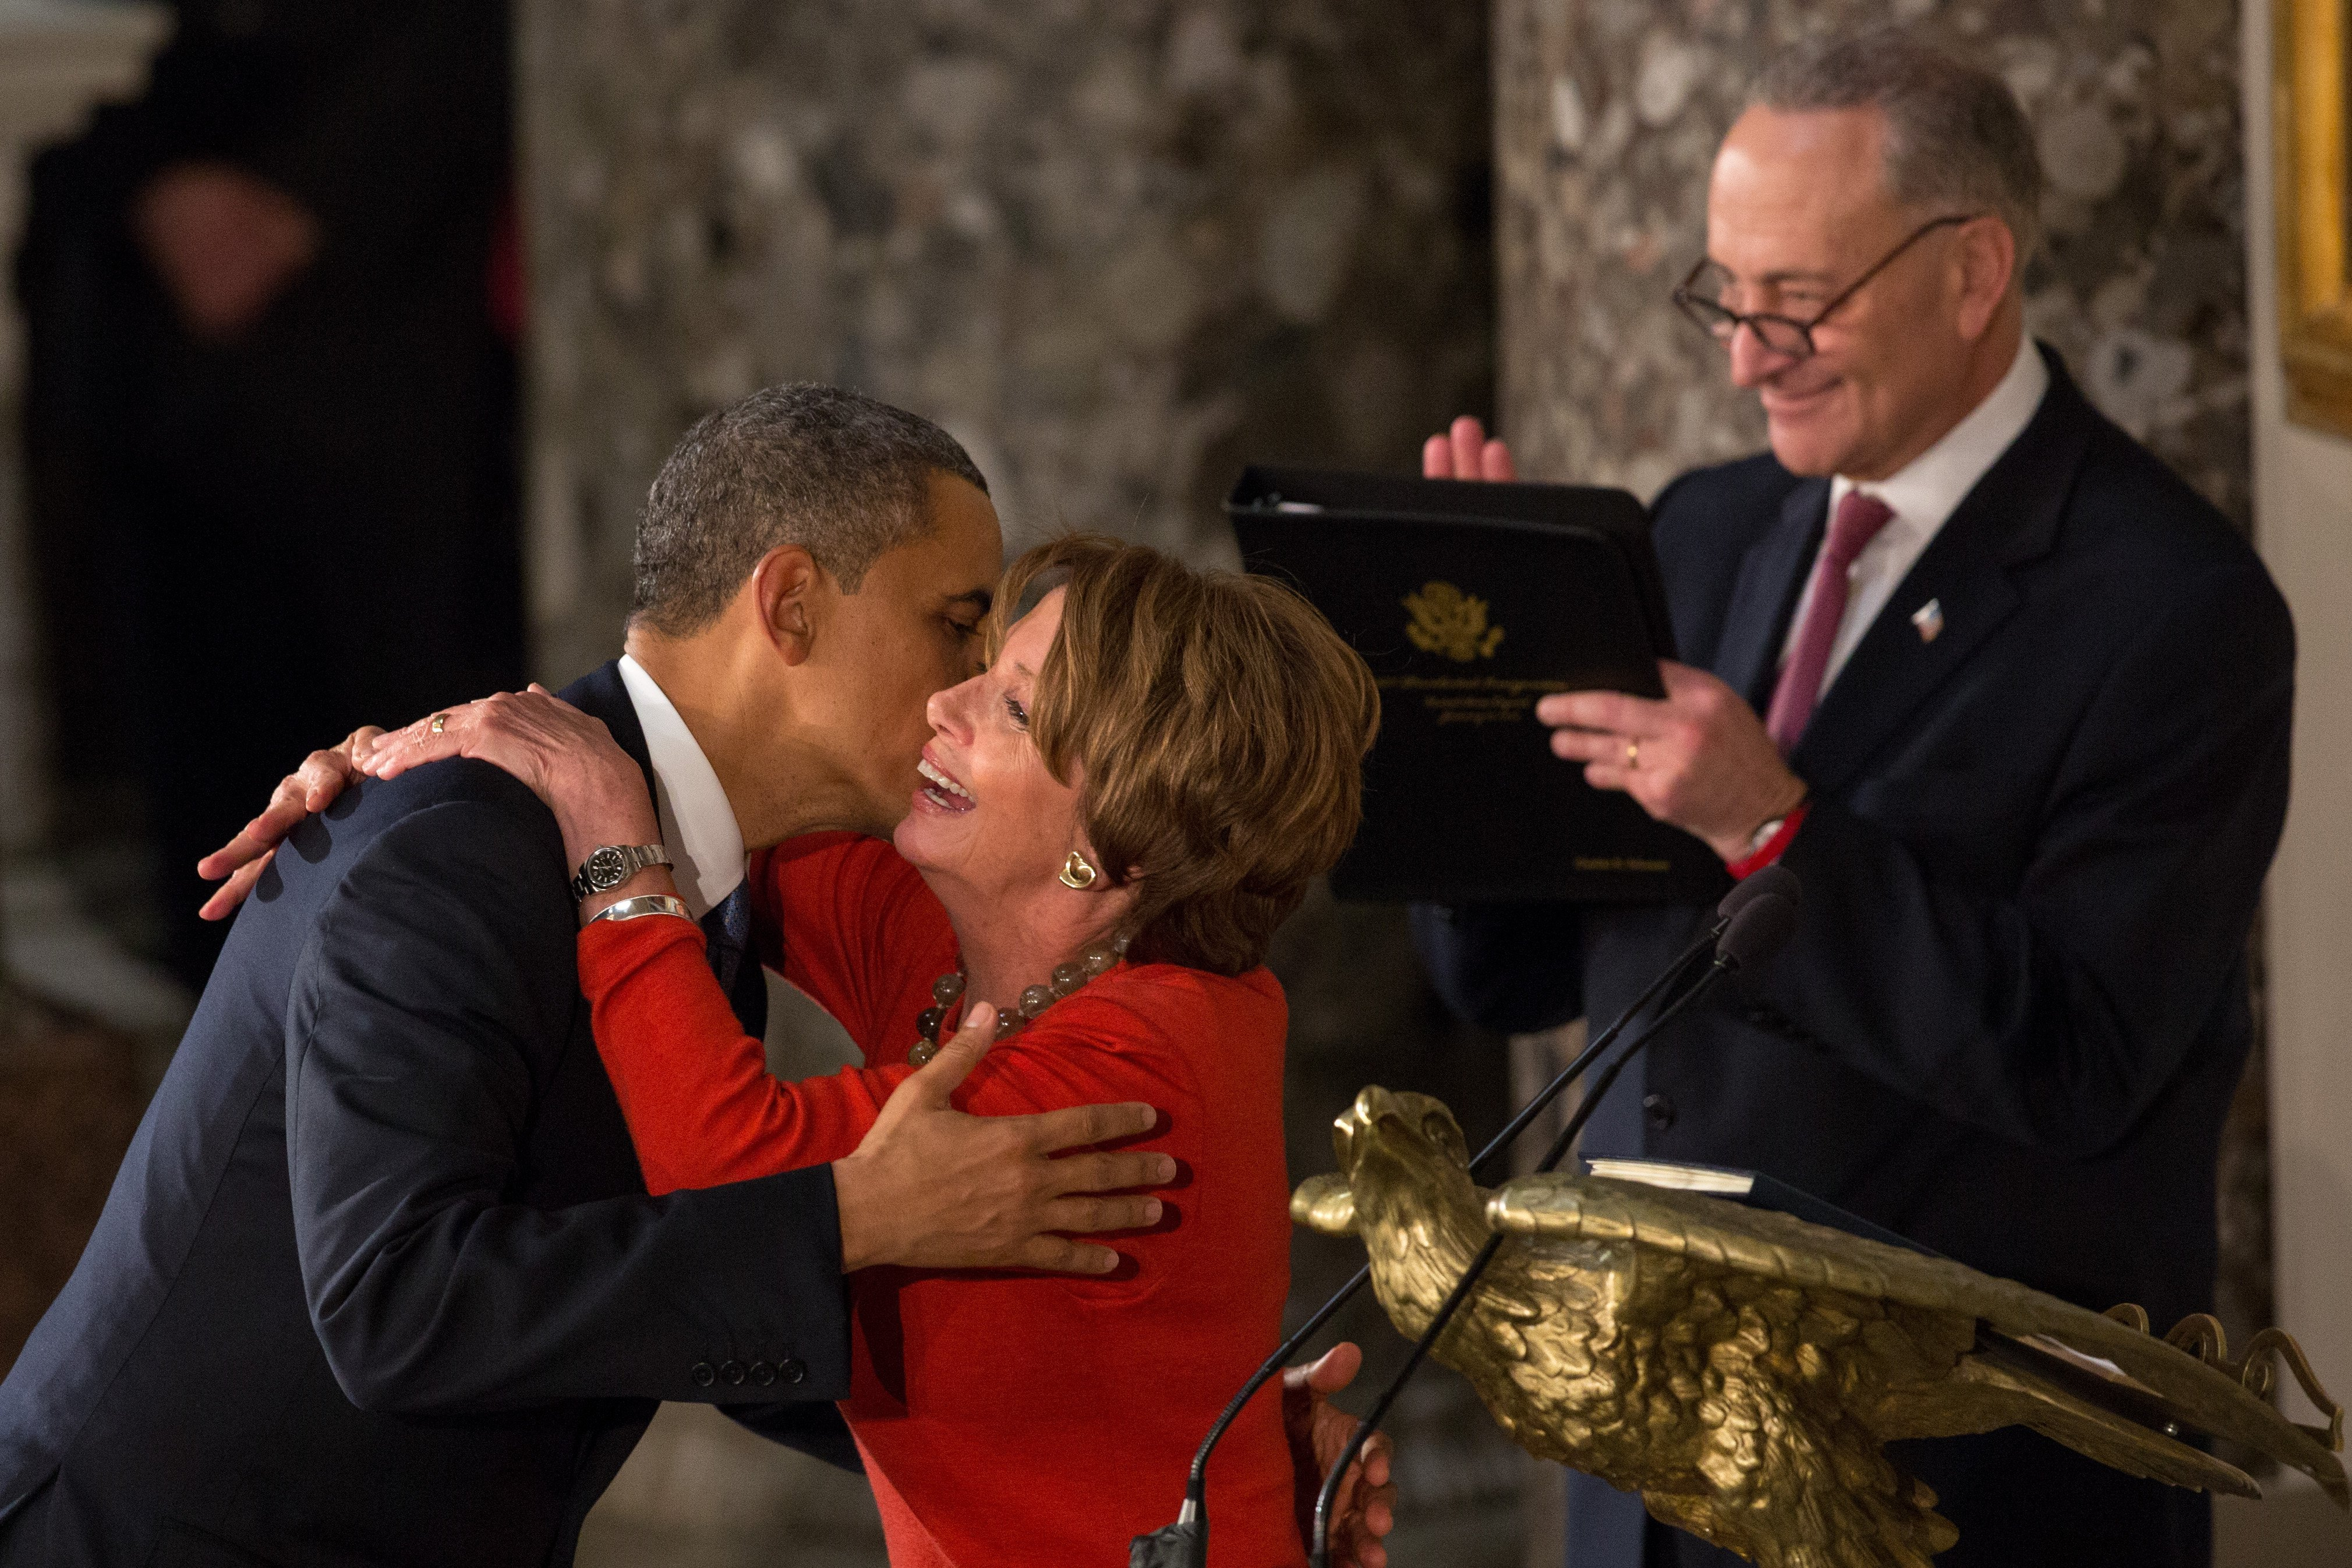 Barack Obama and Nancy Pelosi greeting each other at the Inaugural Luncheon in Statuary Hall in 2013 | Photo: Getty Images